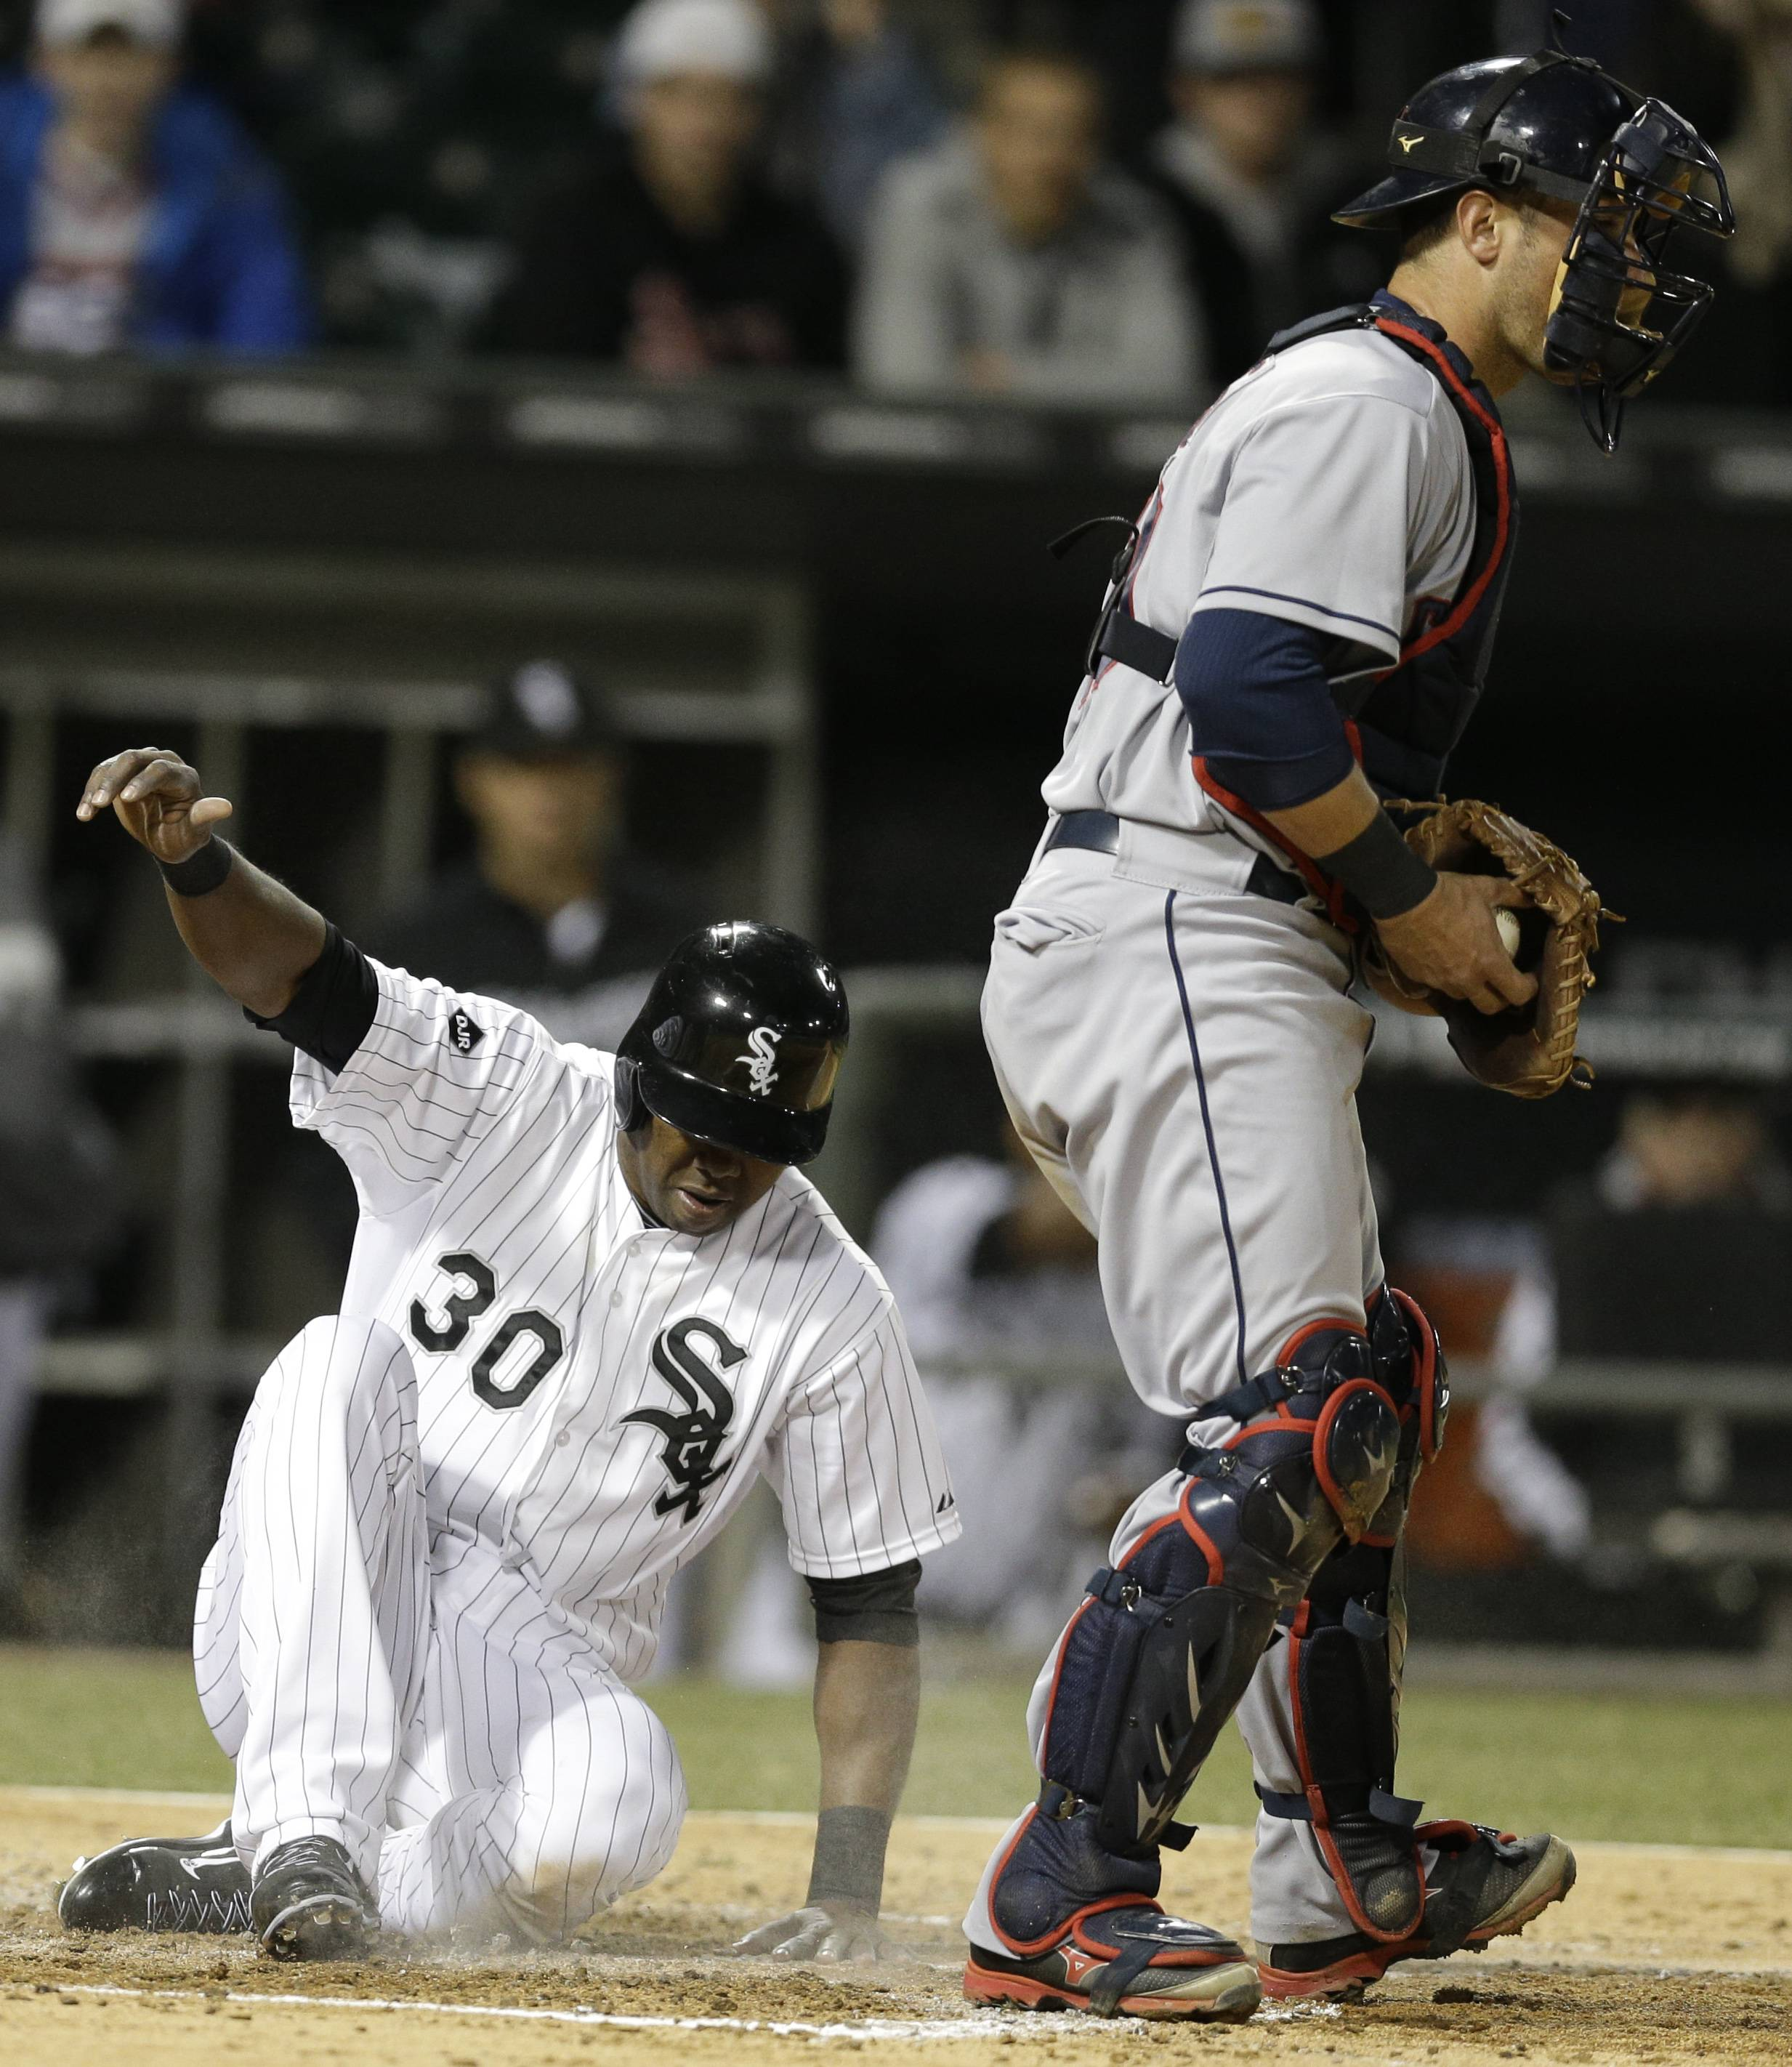 Chicago White Sox's Alejandro De Aza, left, scores past Cleveland Indians catcher Yan Gomes during the fourth inning of a baseball game in Chicago, Thursday, April 10, 2014.